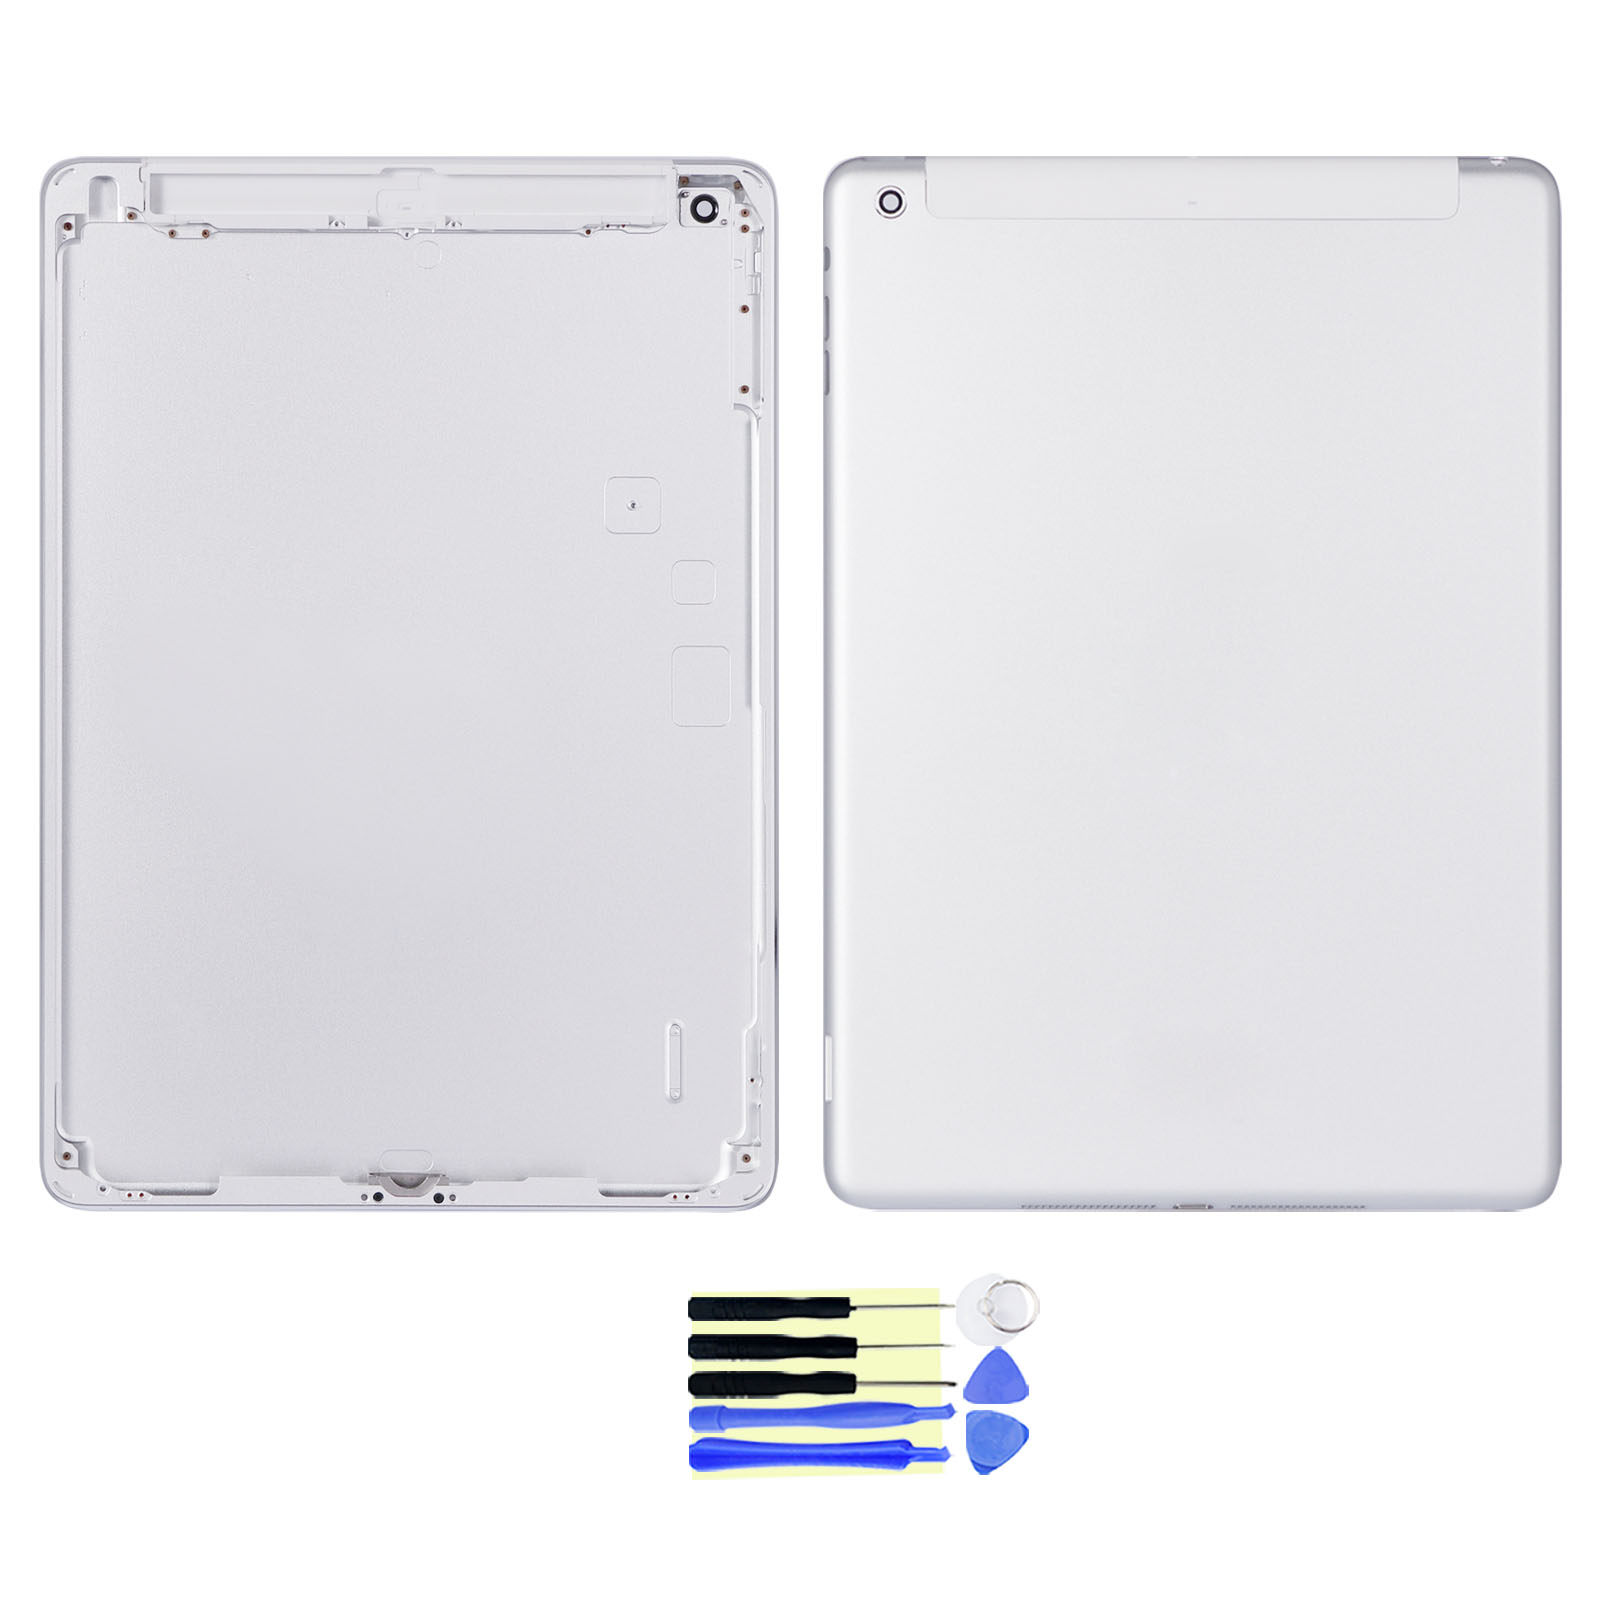 For Ipad 4 Wlan+Cellular MM A1460  Back Cover Battery Housing Door Repair parts